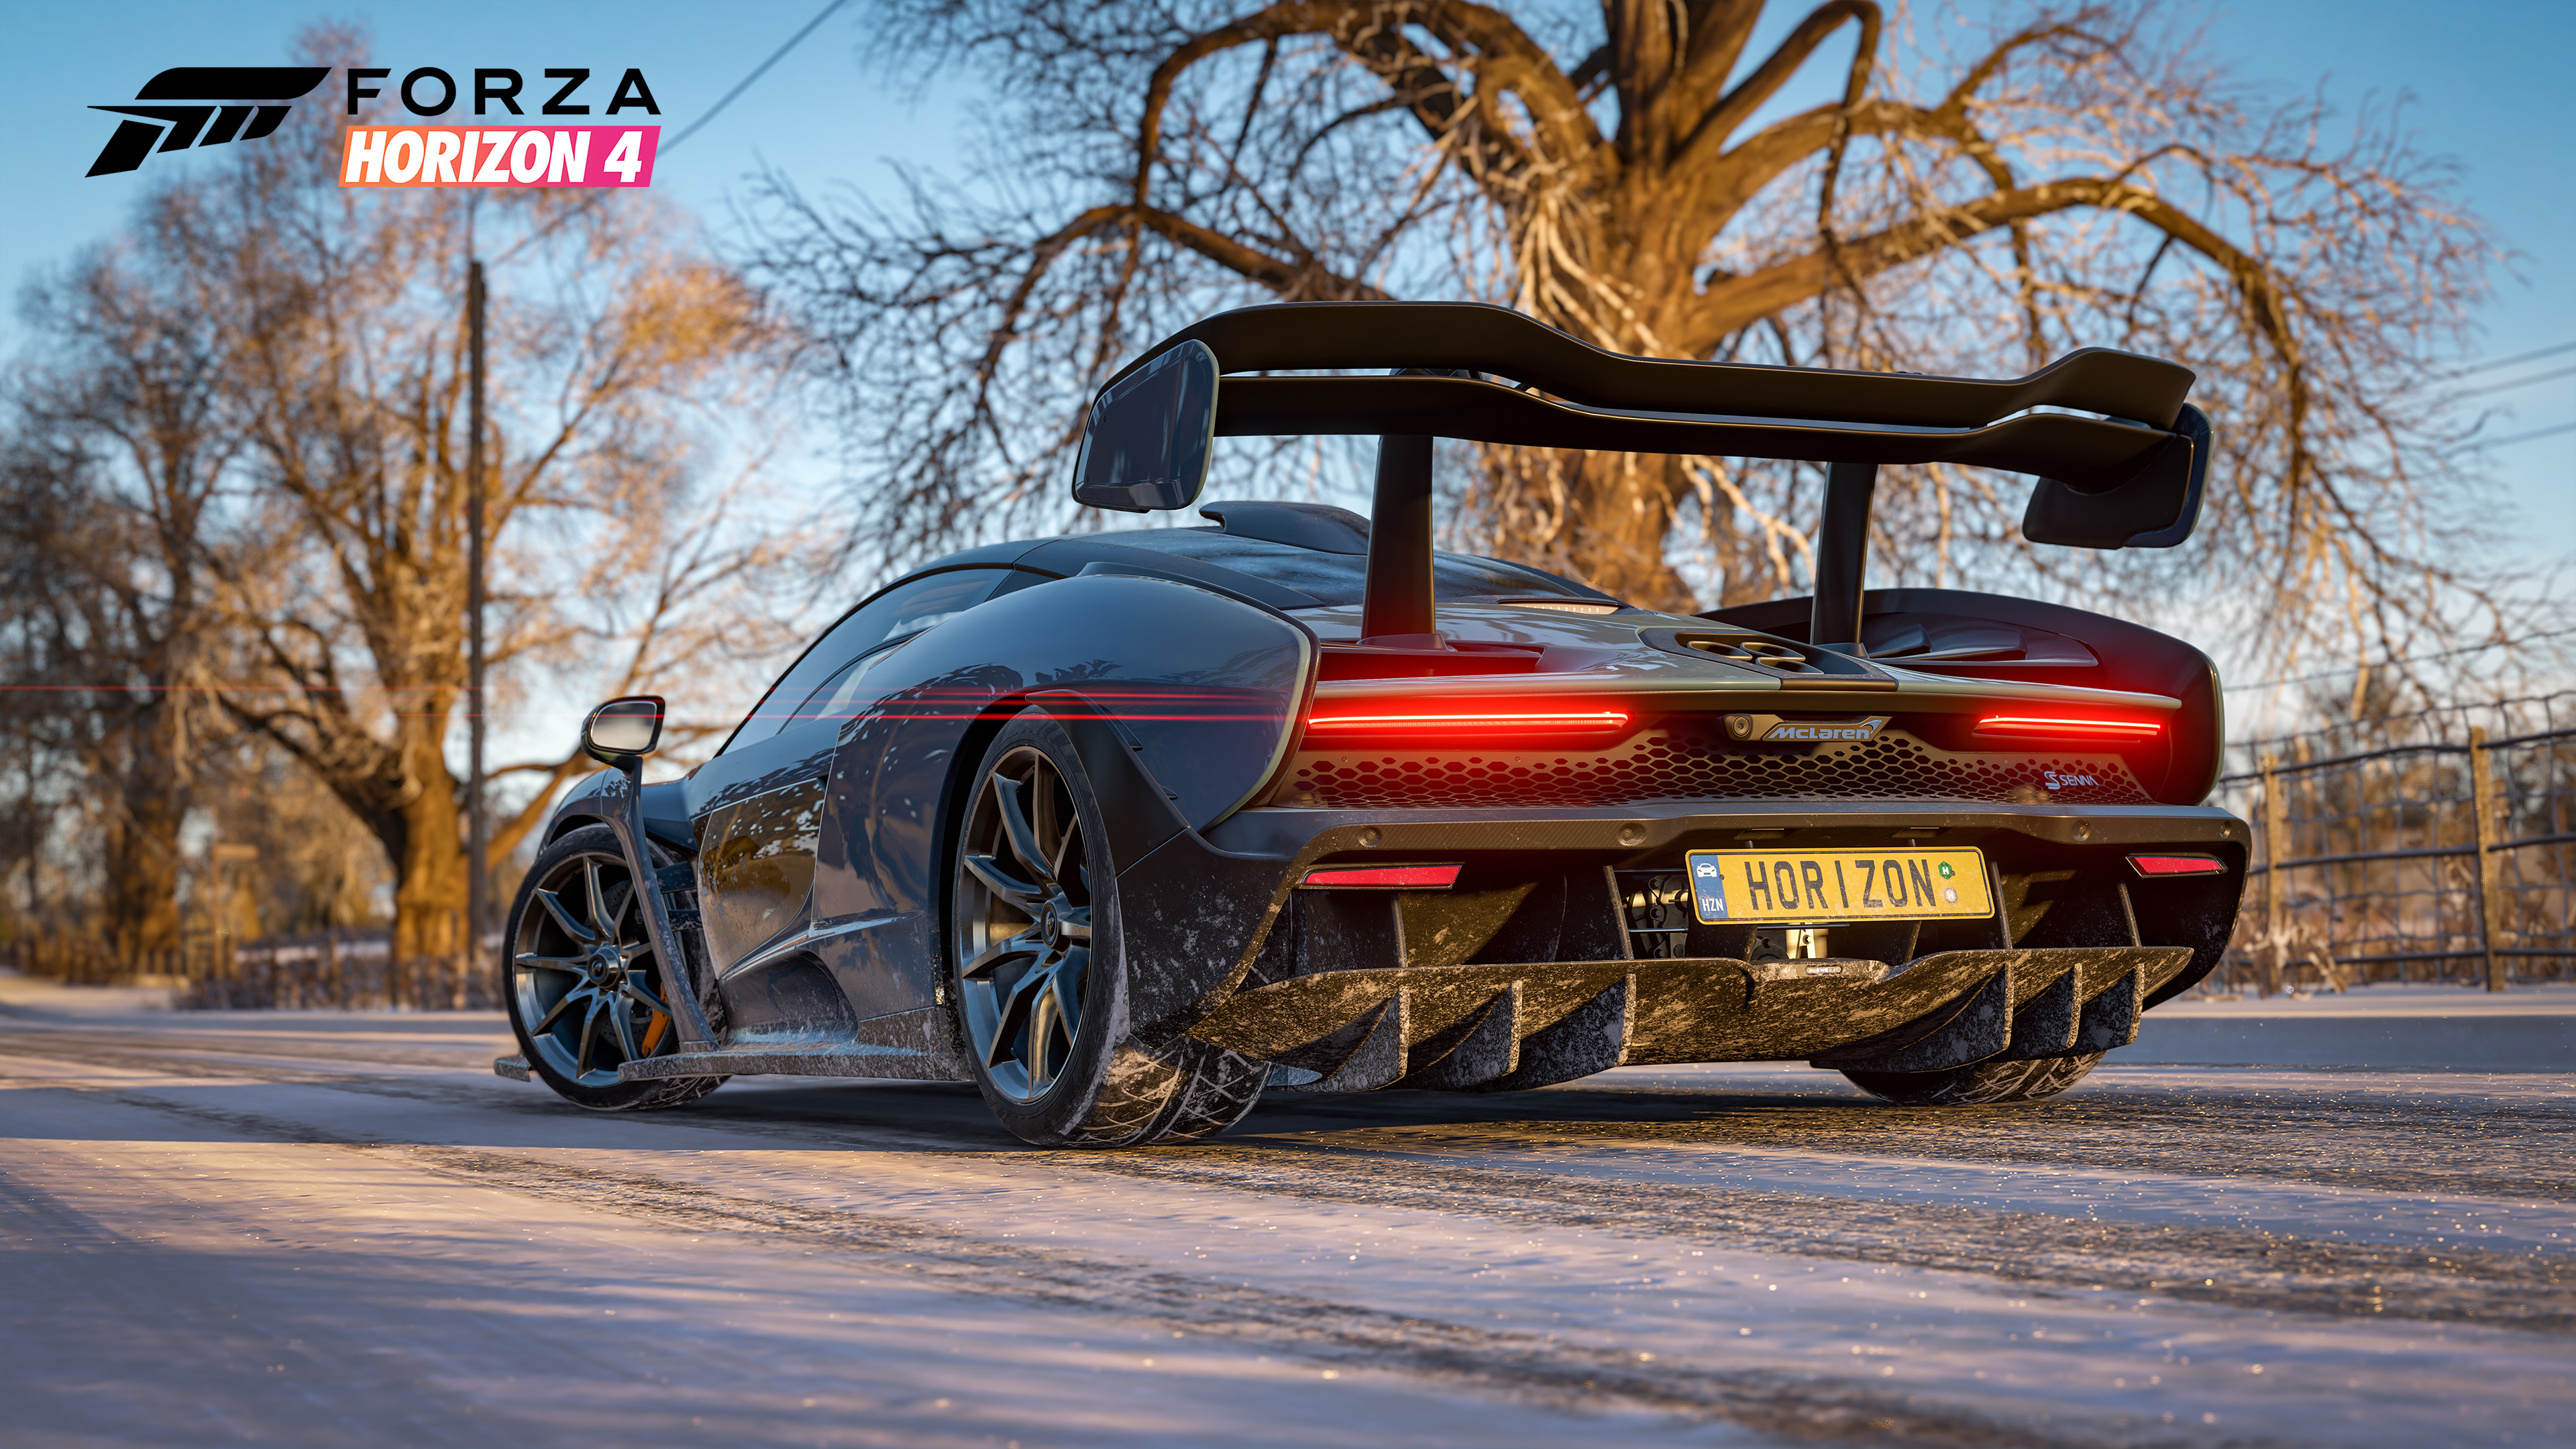 Forza horizon 4 mclaren 4k hd games 4k wallpapers images backgrounds photos and pictures - Forza logo wallpaper ...